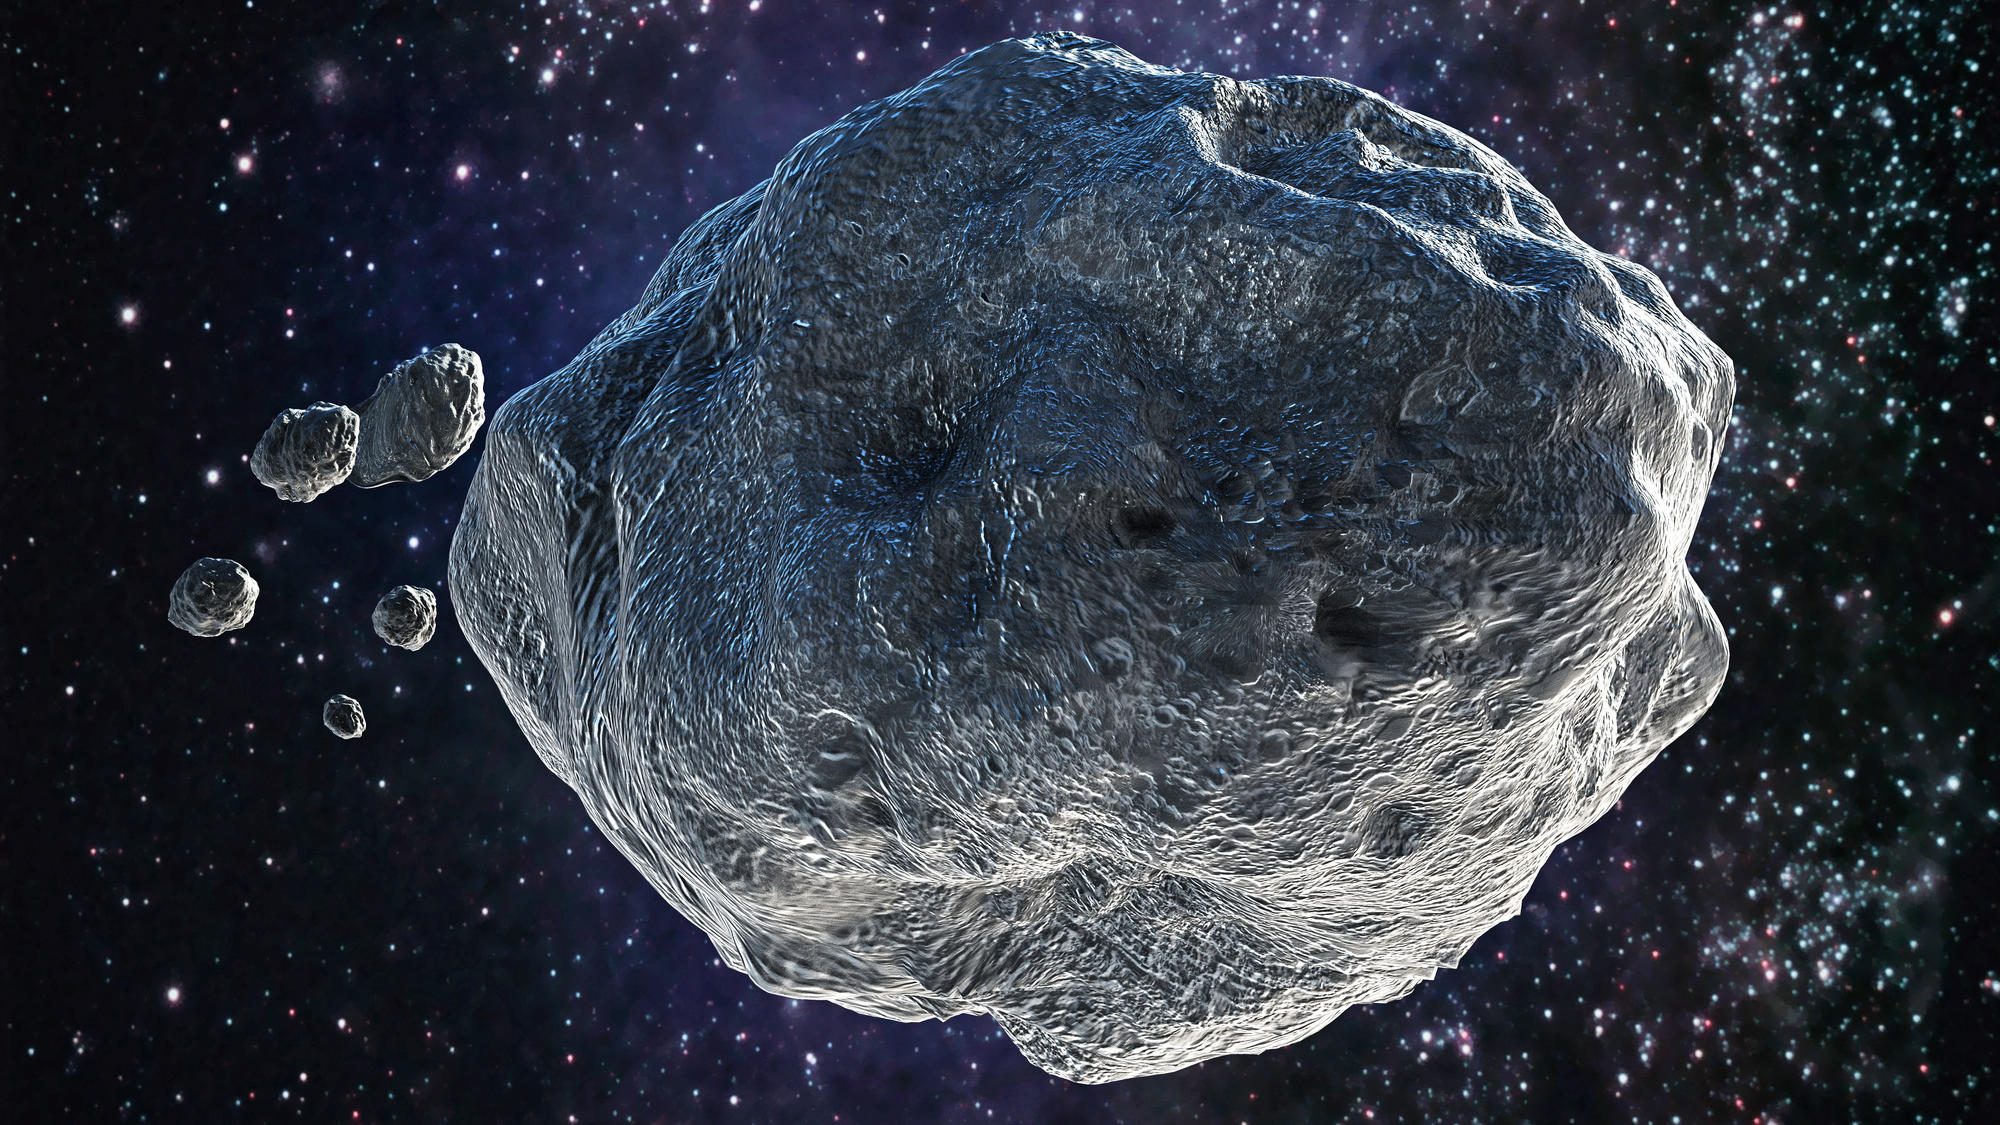 Asteroid 2015 BY310 kommt uns immer näher - RTL Online